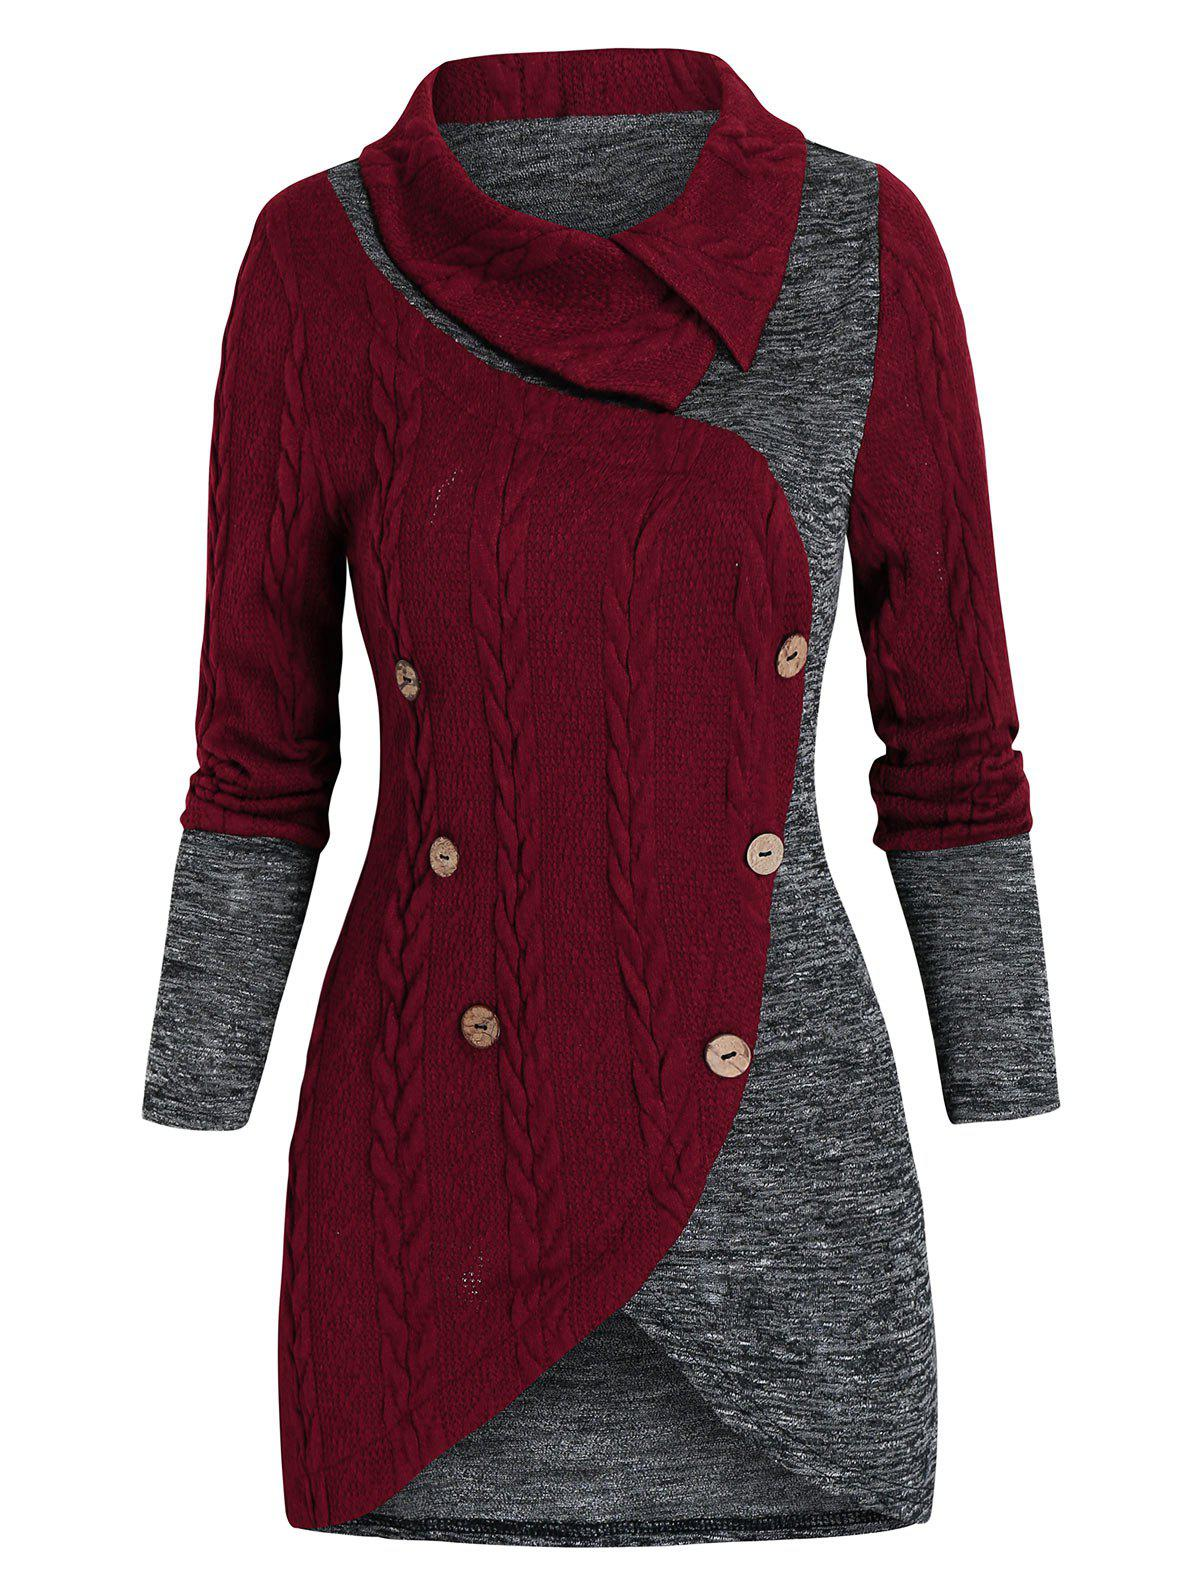 Mock Button Cable Knit Contrast Sweater - RED WINE M